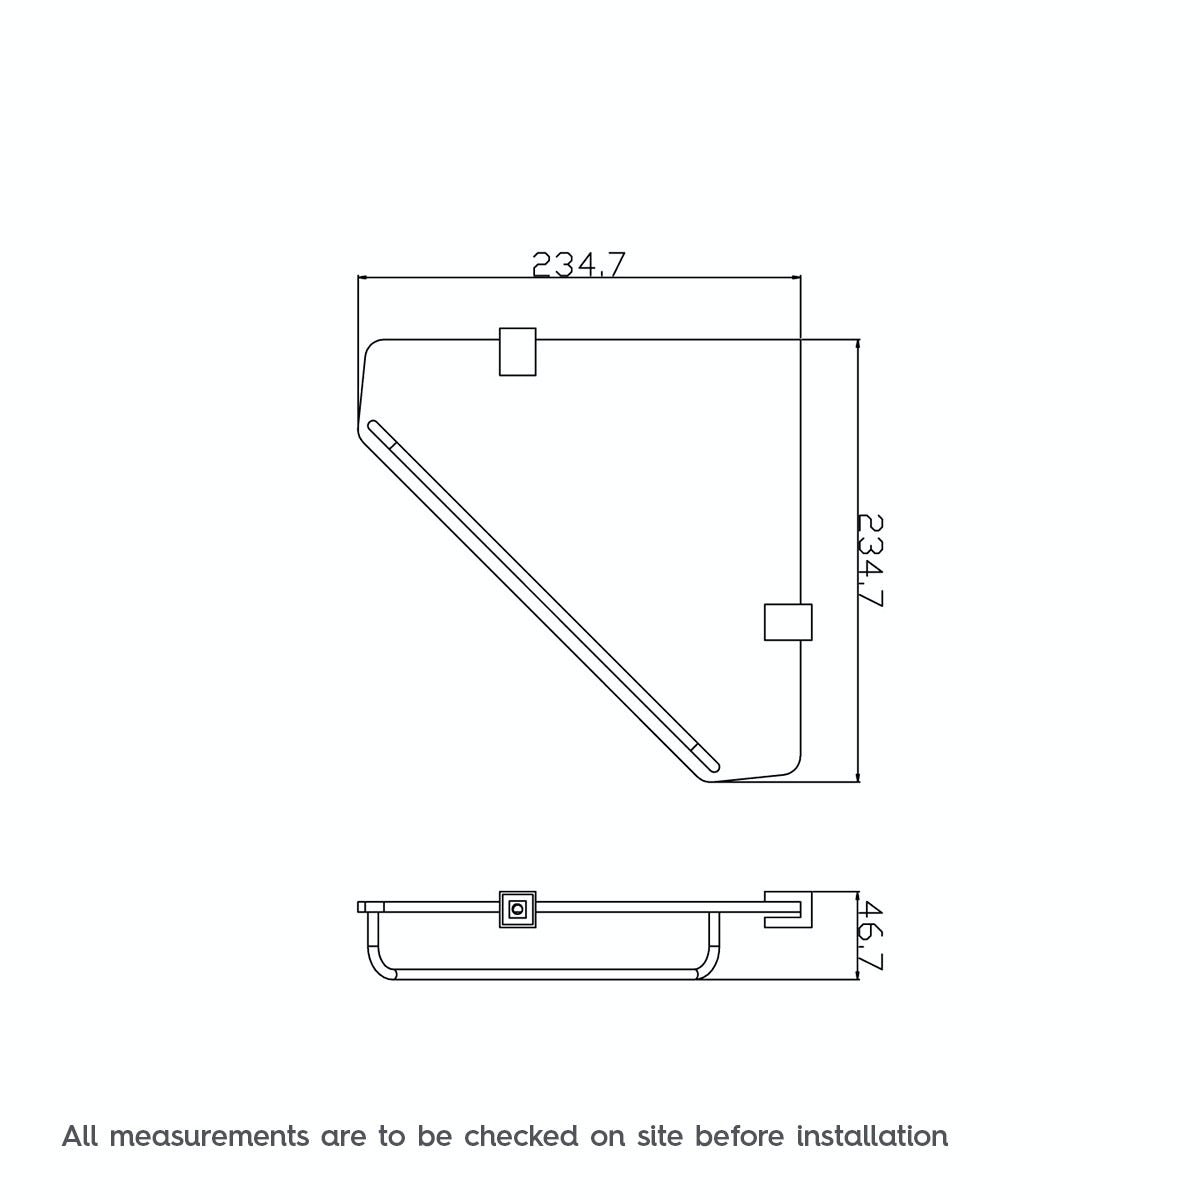 Dimensions for Orchard Options squared corner glass shelf